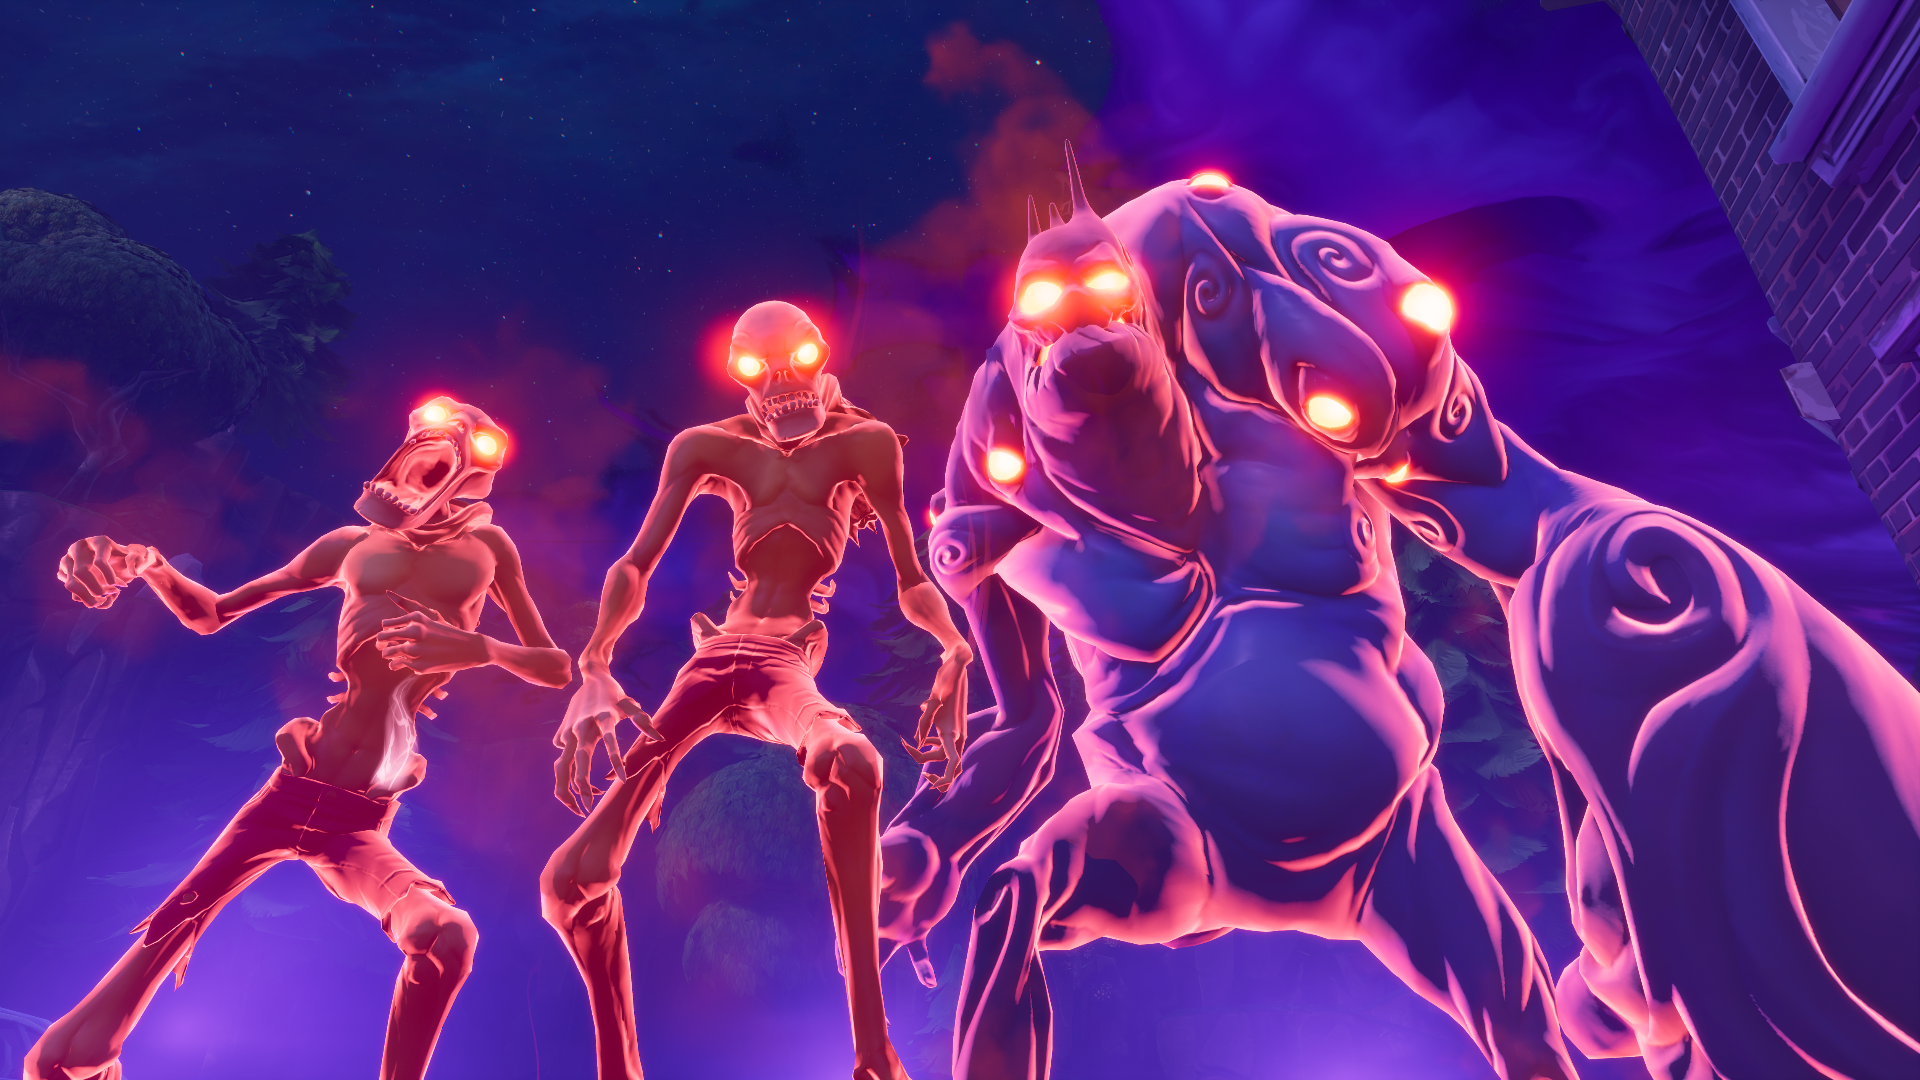 Fortnite had 3.4M users on Sunday before it crashed, Epic says